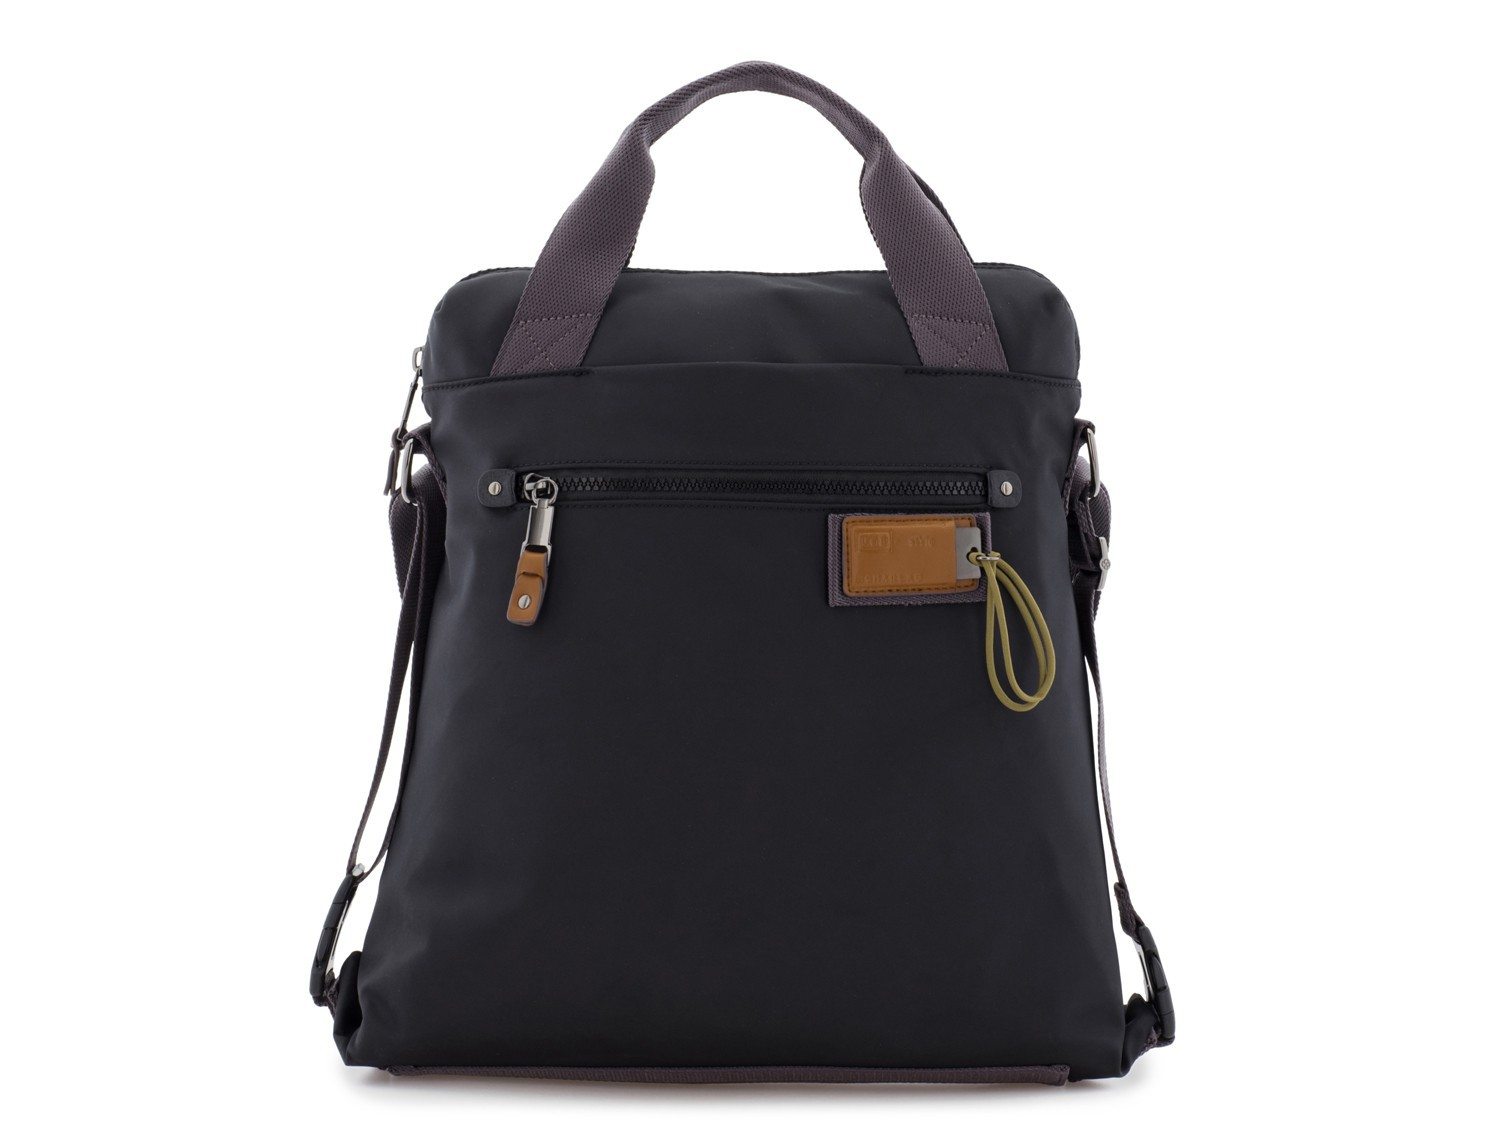 Bag convertible into backpack in black front